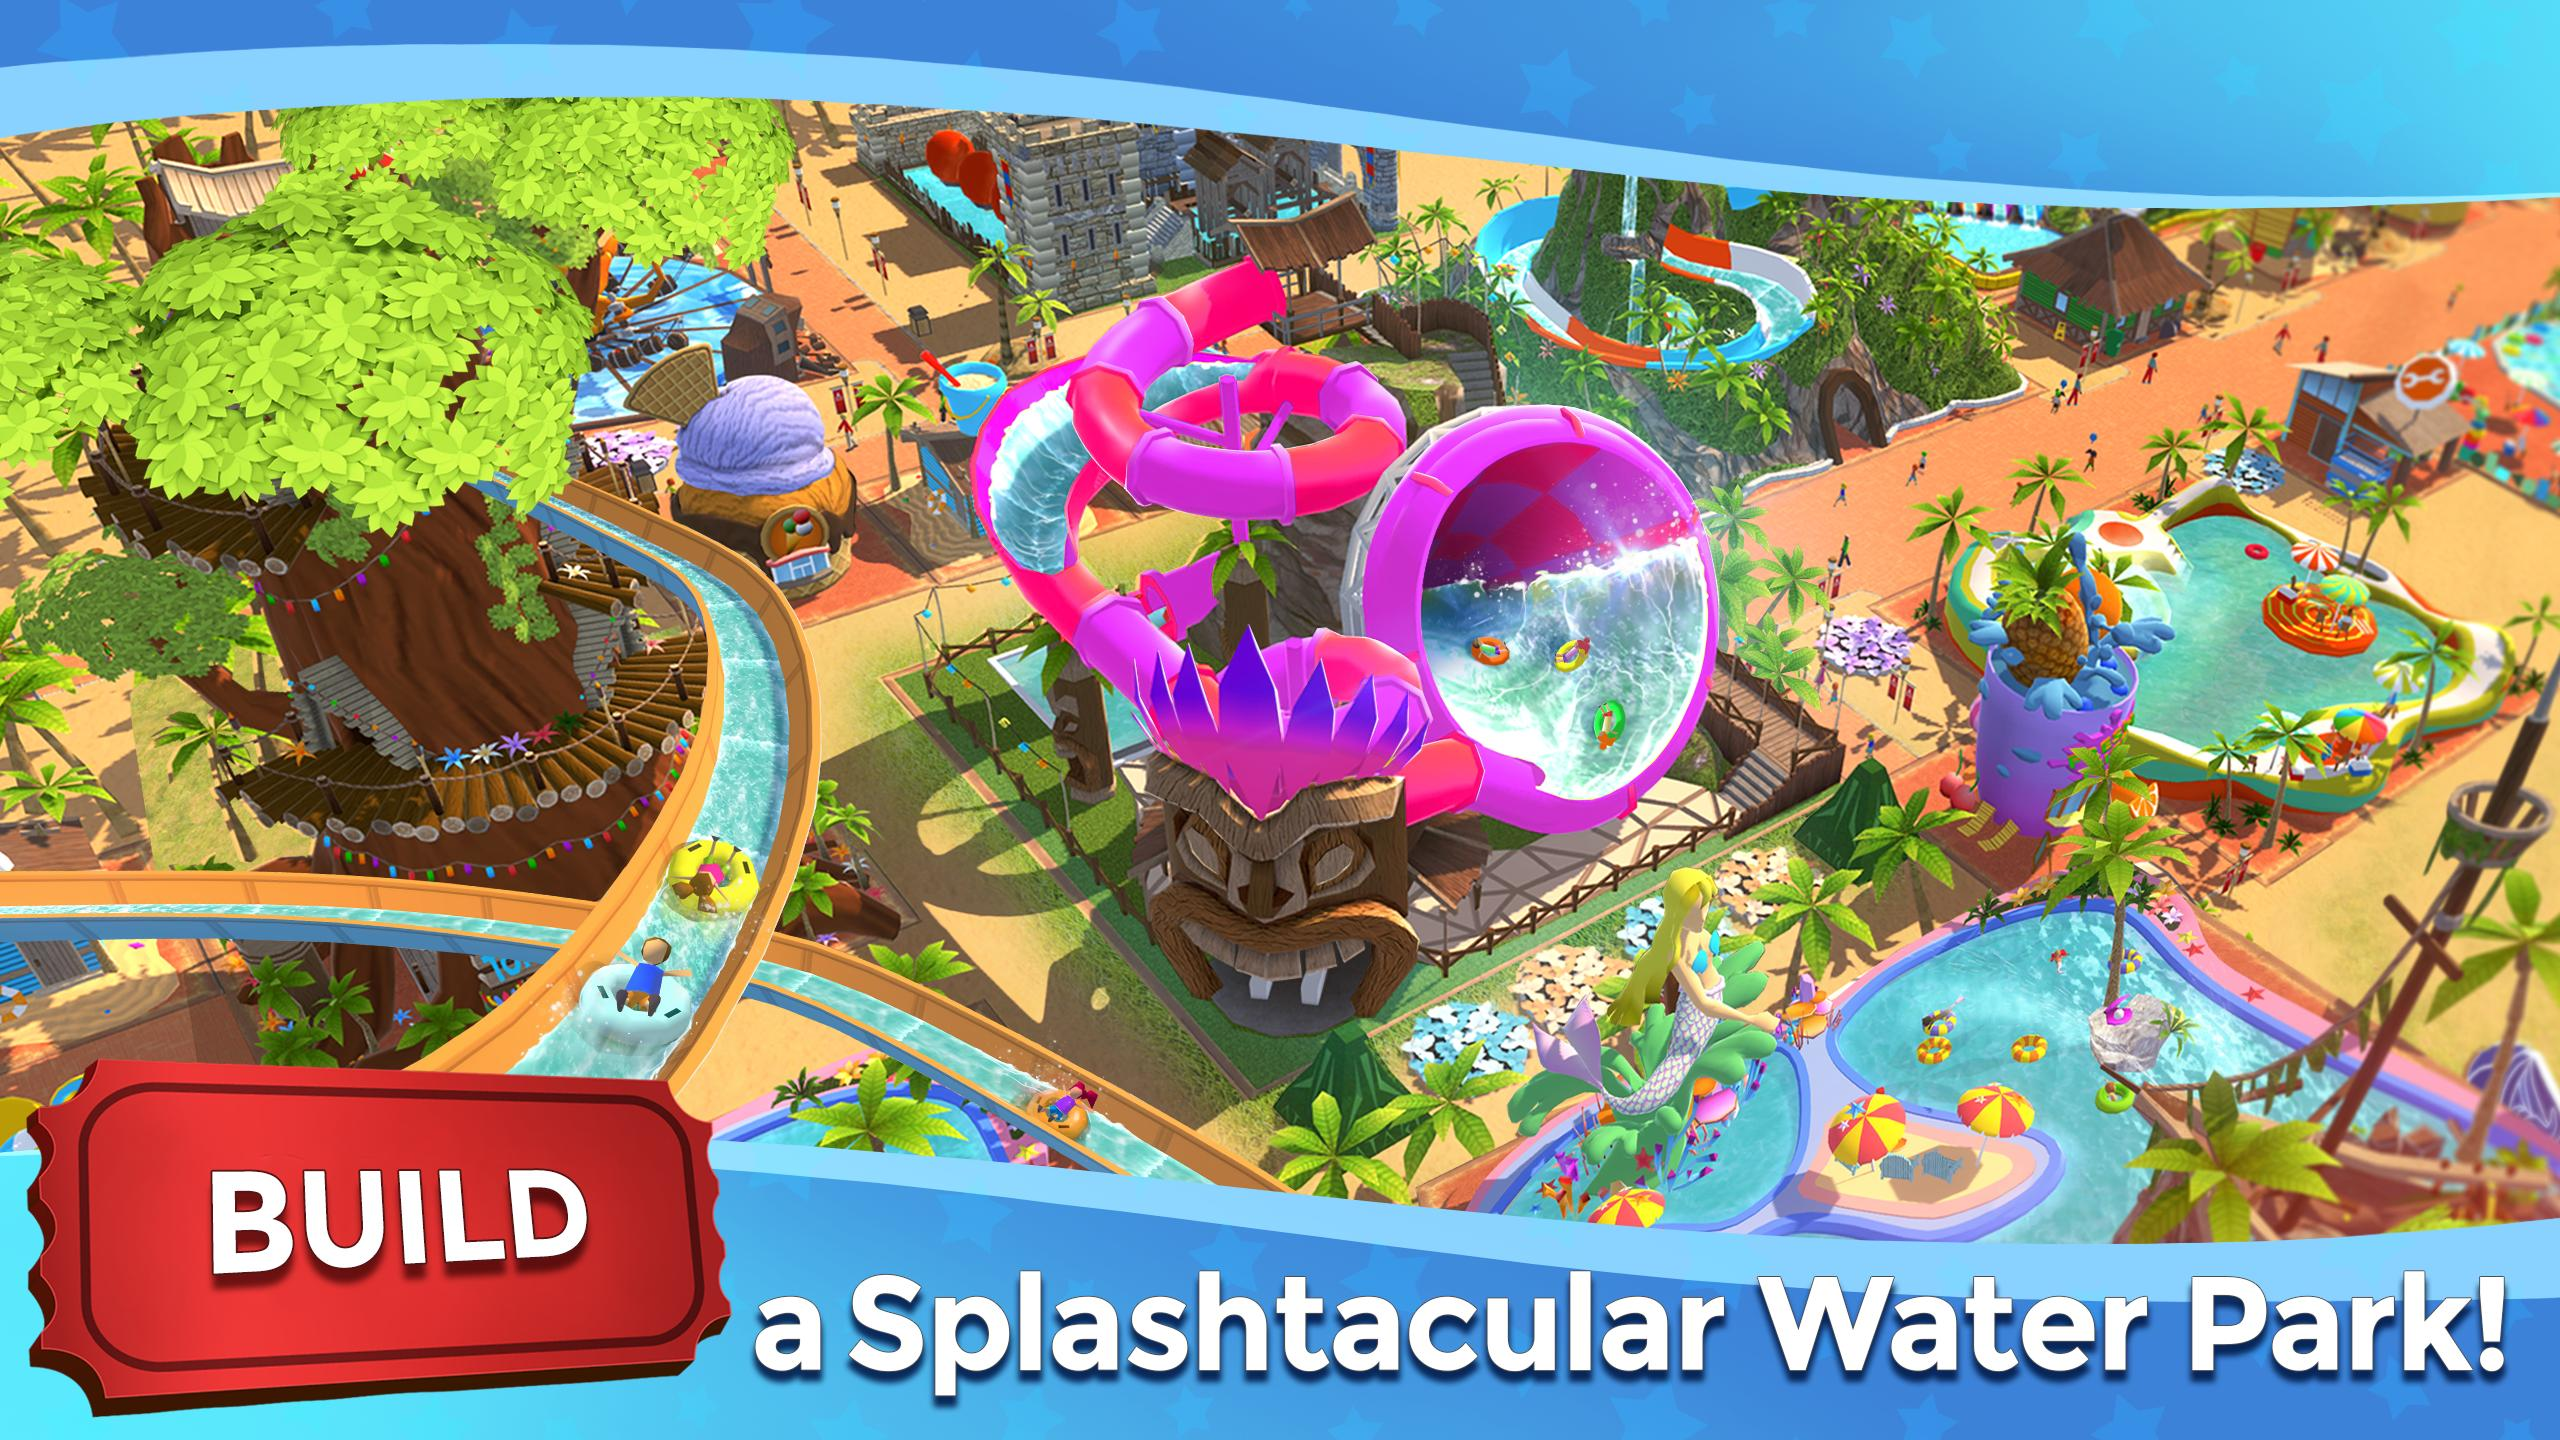 RollerCoaster Tycoon Touch - Build your Theme Park 3.5.0 Screenshot 12